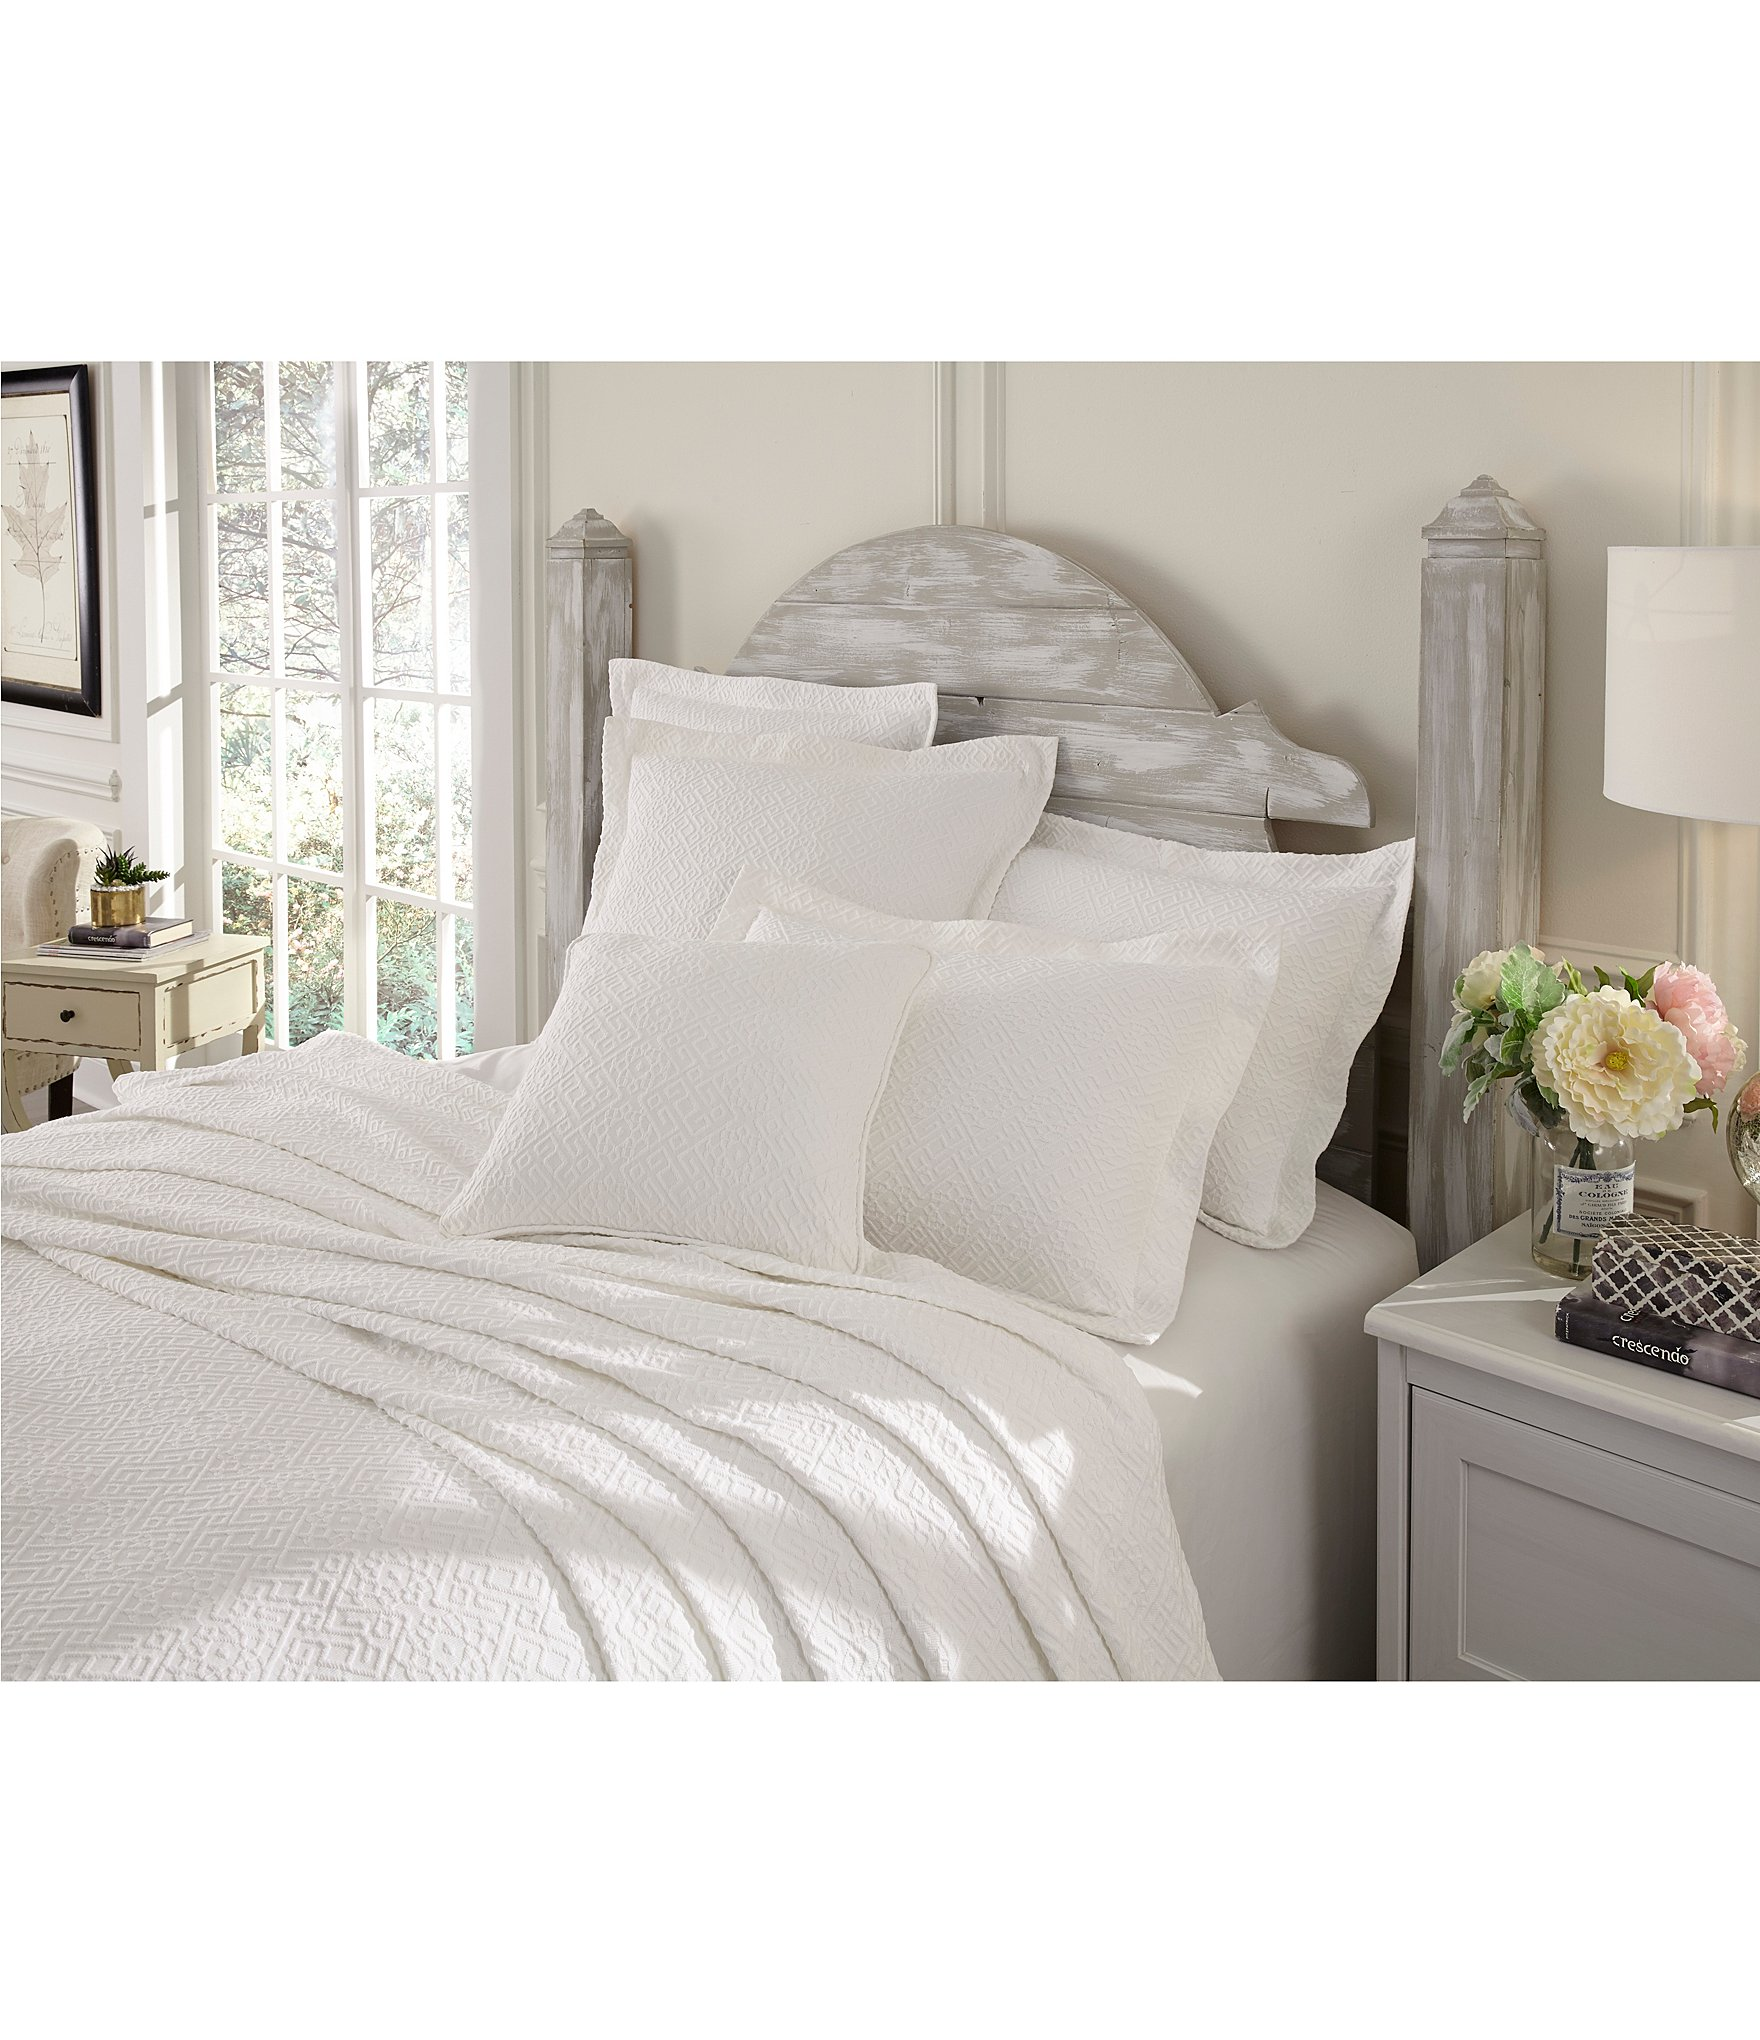 living bedding dillards the southern bed of benefits